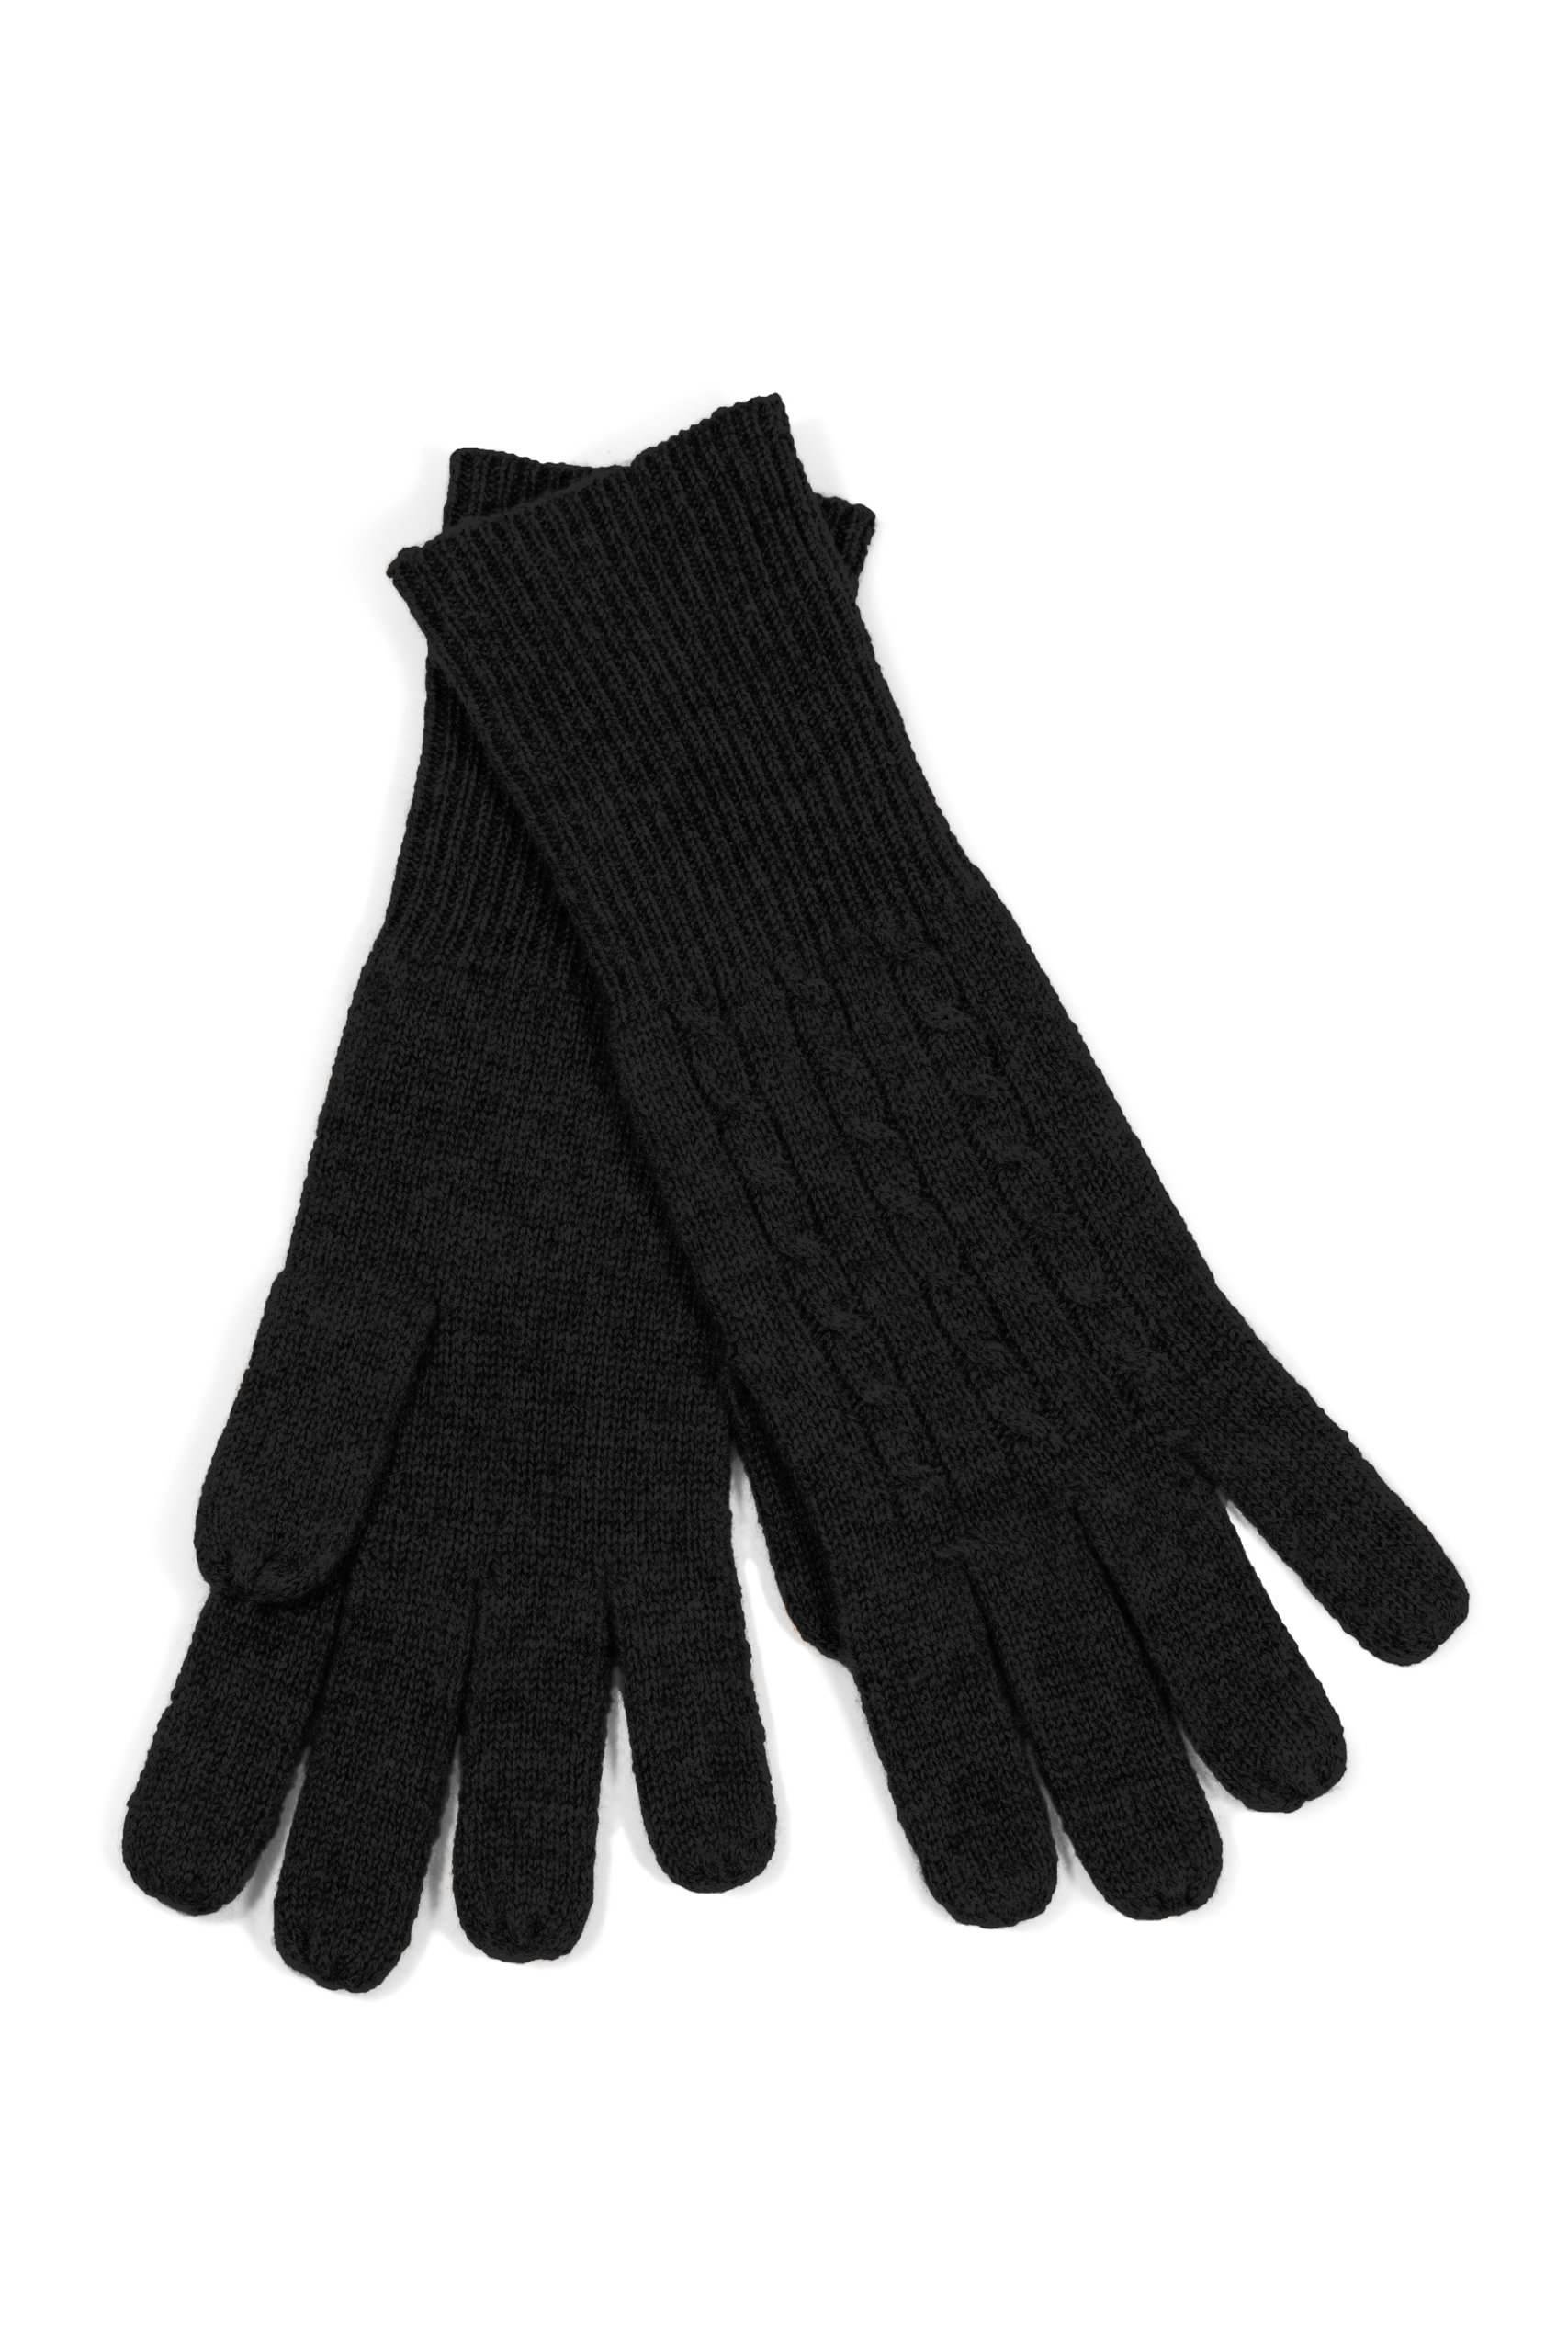 Fishers Finery Women's 100% Pure Cashmere Gloves, Cable with Extended Cuff Black